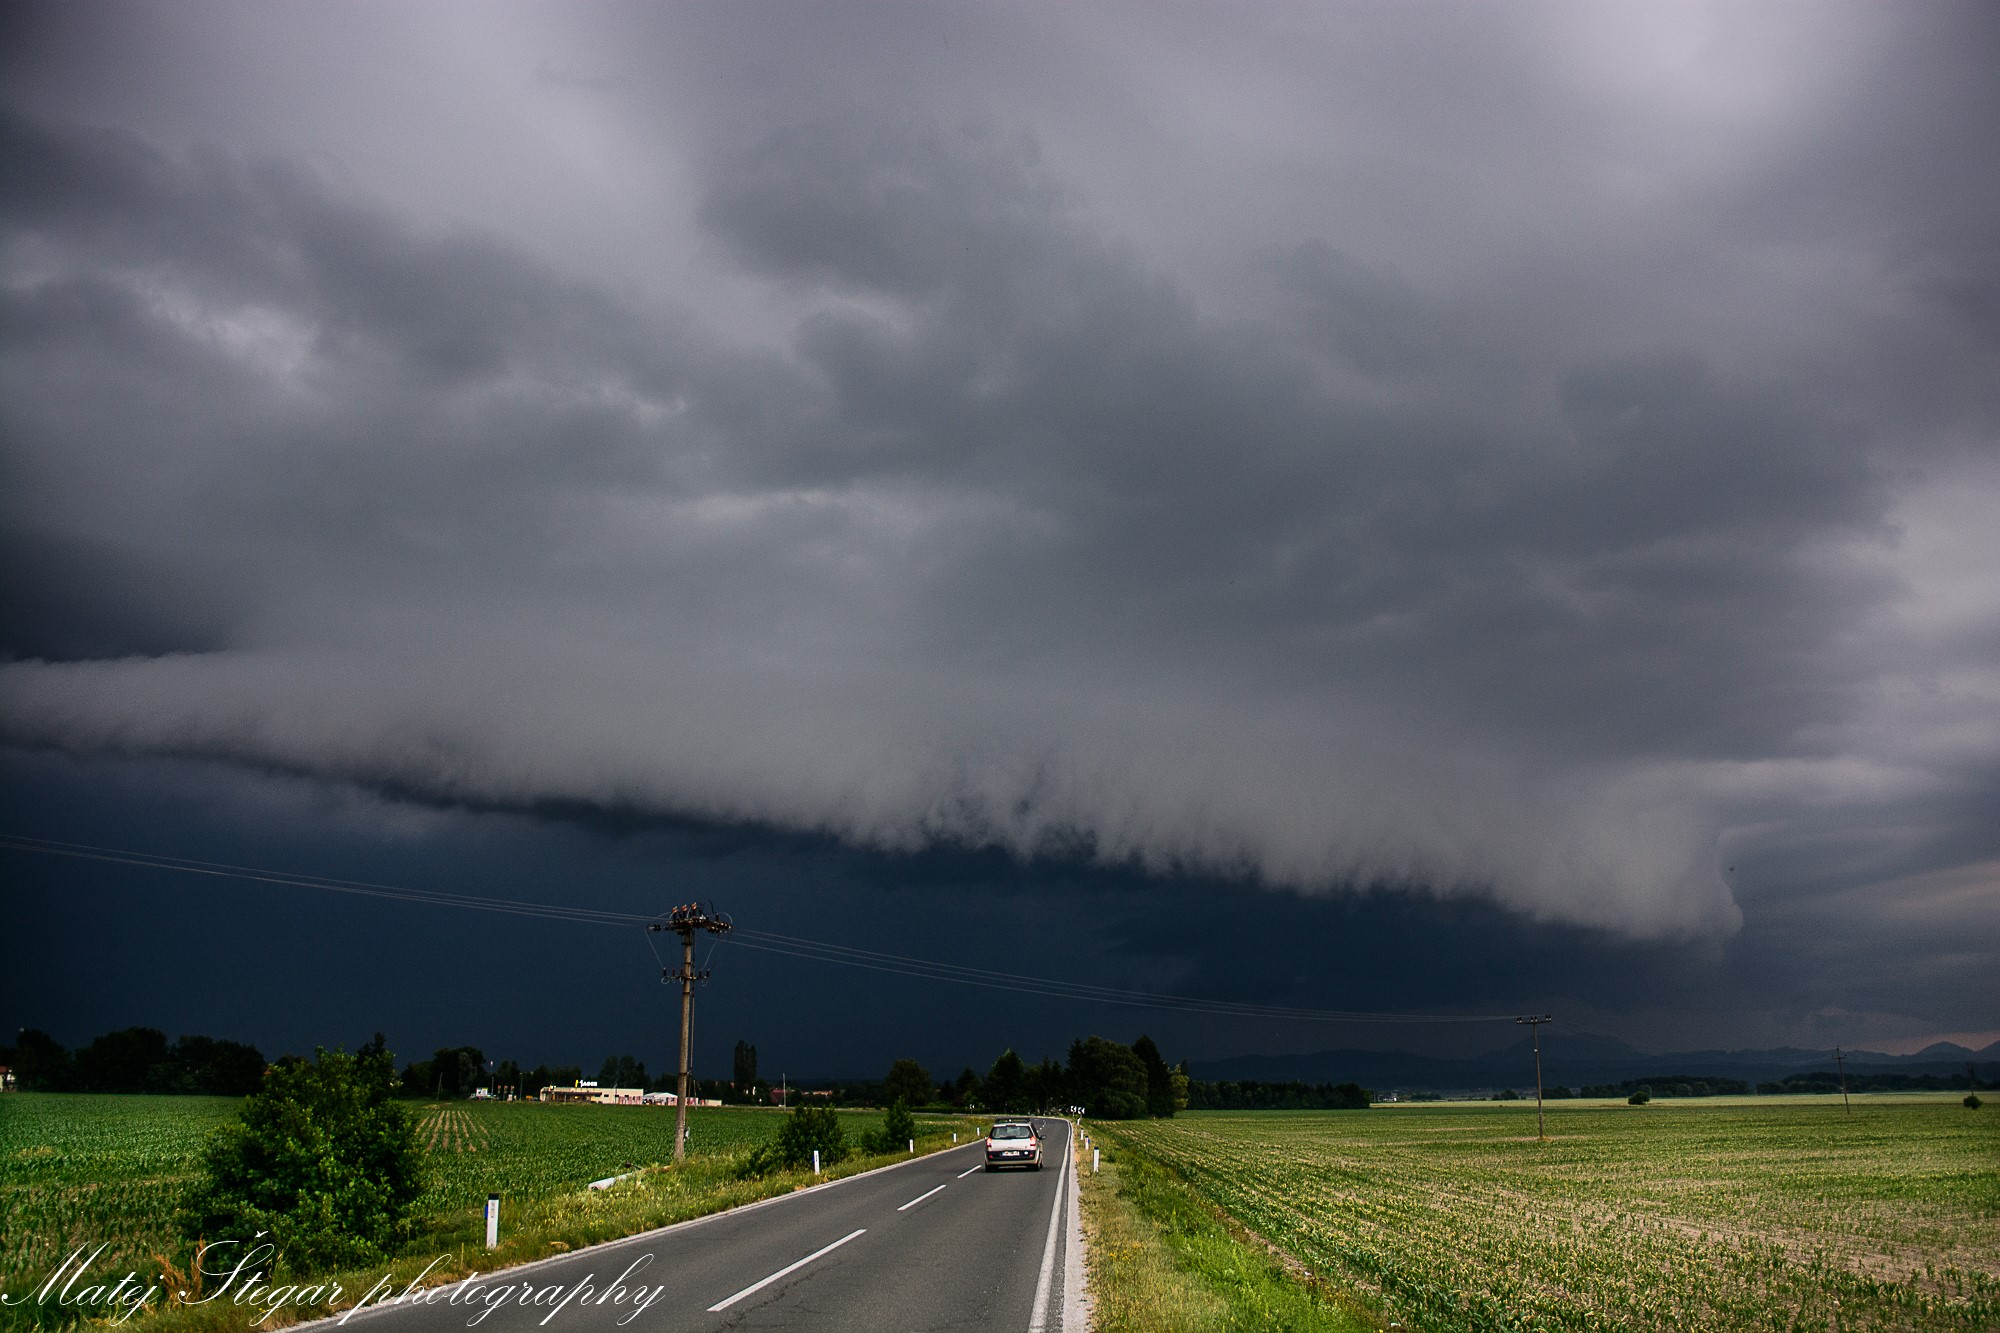 shelf cloud nad dravskim poljem 17.6.2019 matej stegar 3